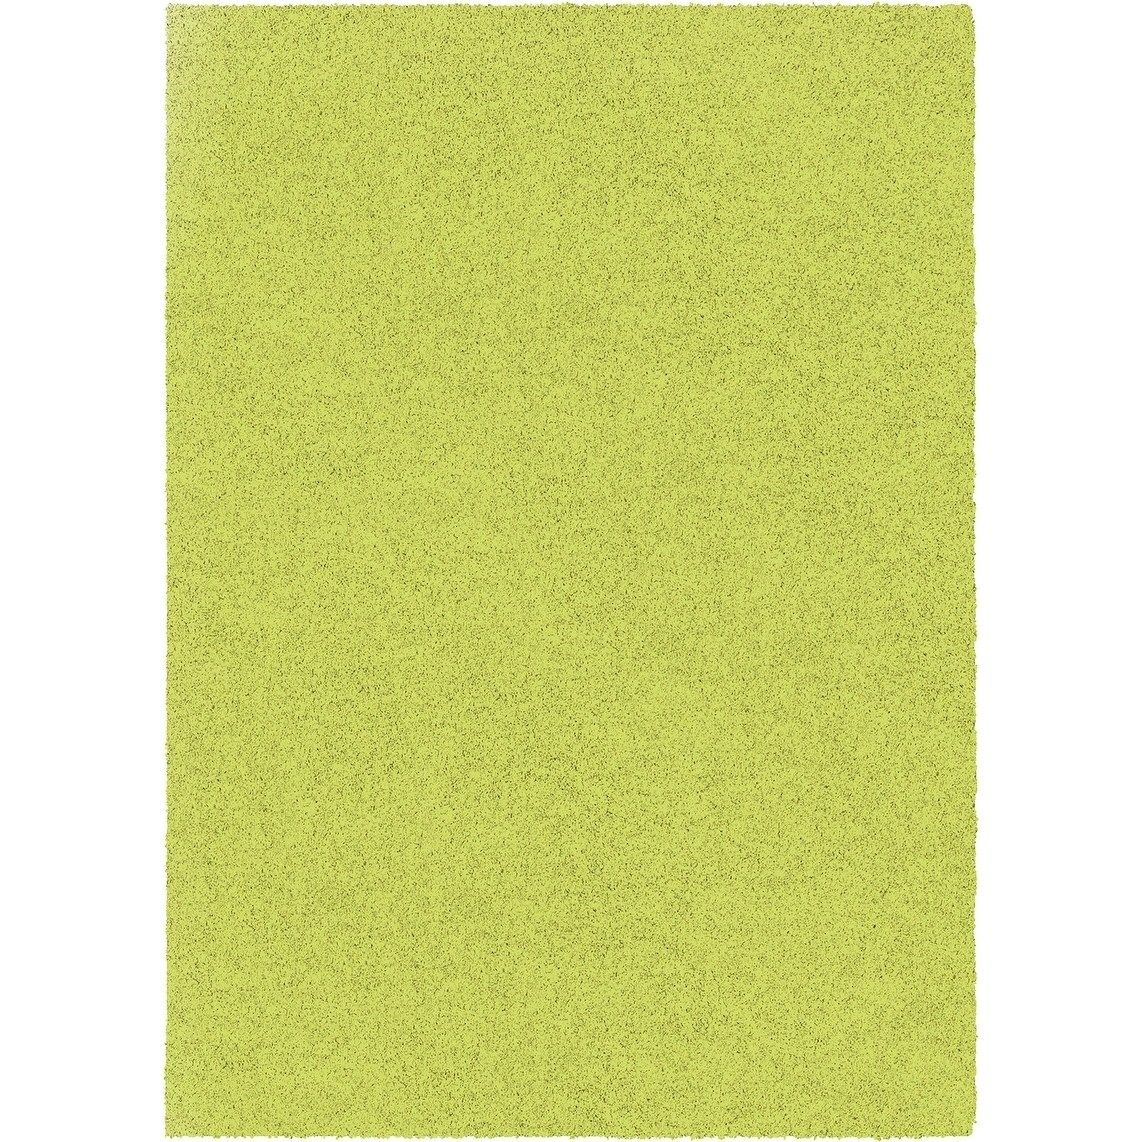 Flossy Lime Green Area Rug 5 3 X 7 6 Area Rugs Rugs Green Bathroom Rugs